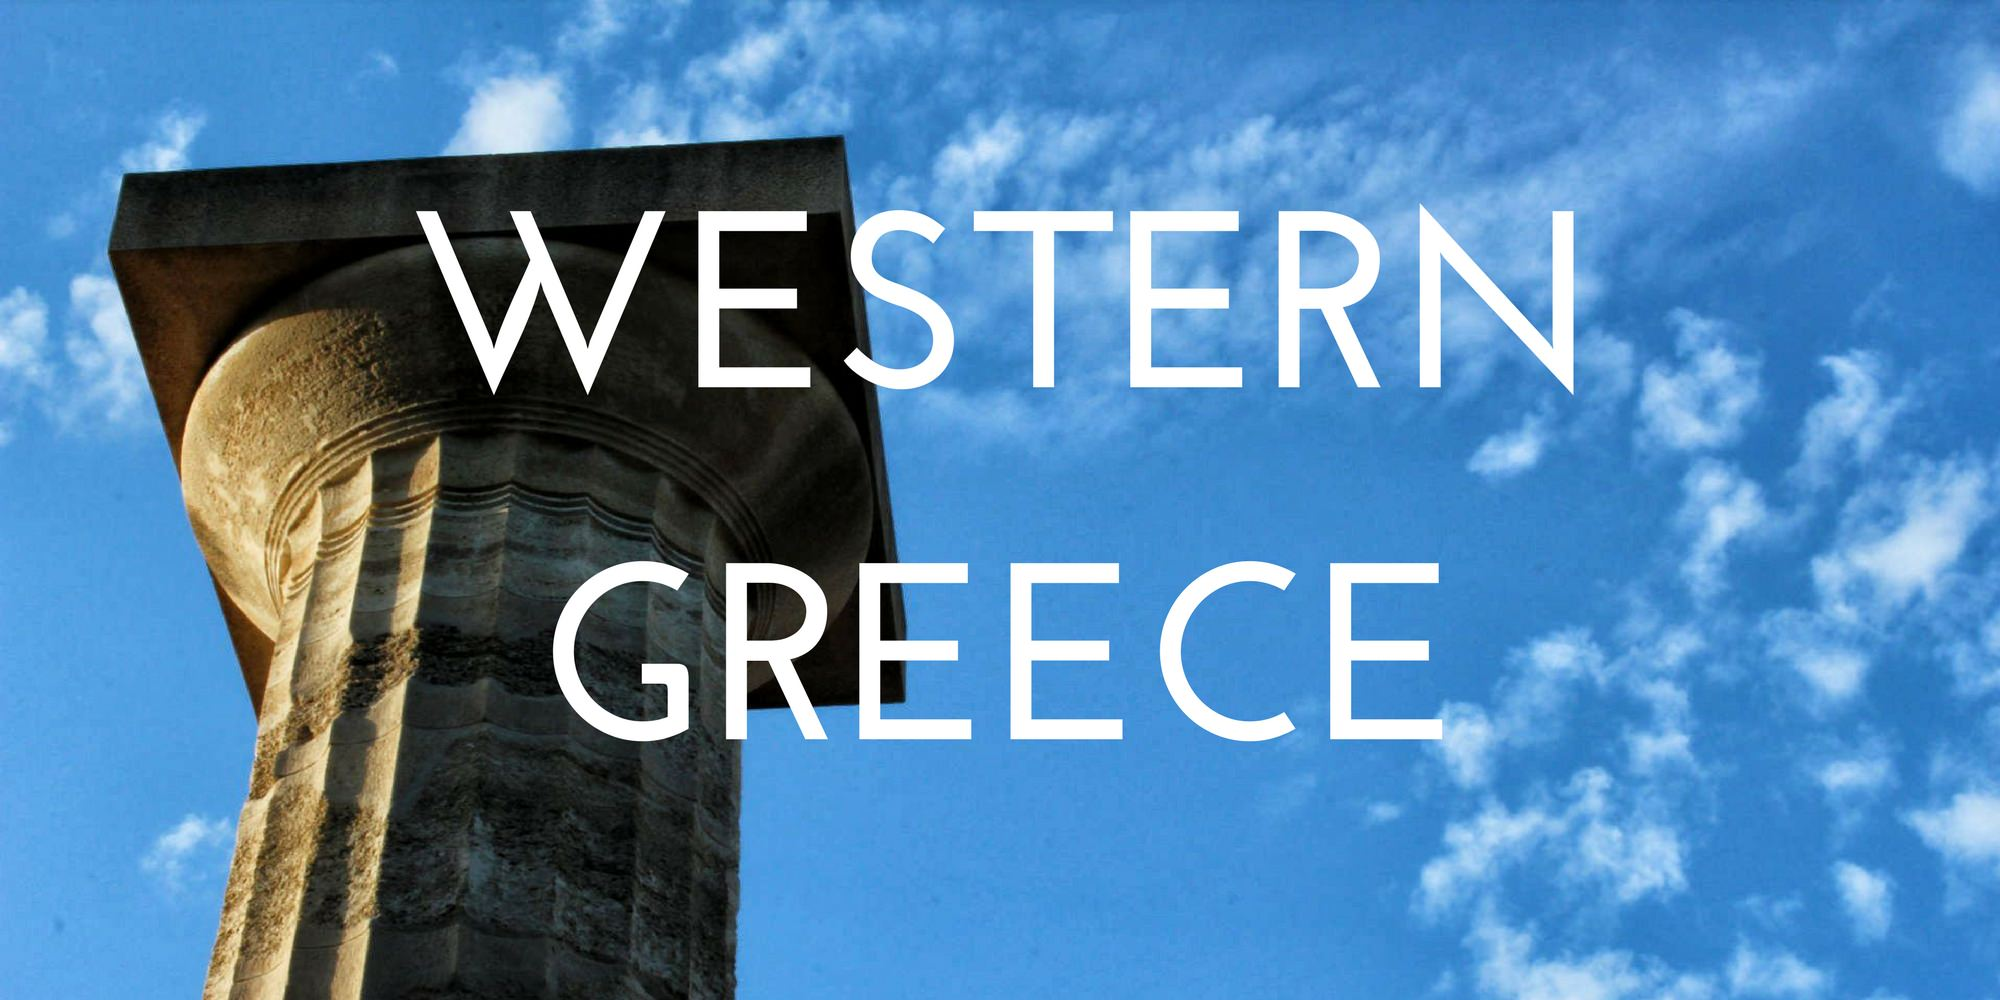 Western Greece - Authentic Traveling - Header